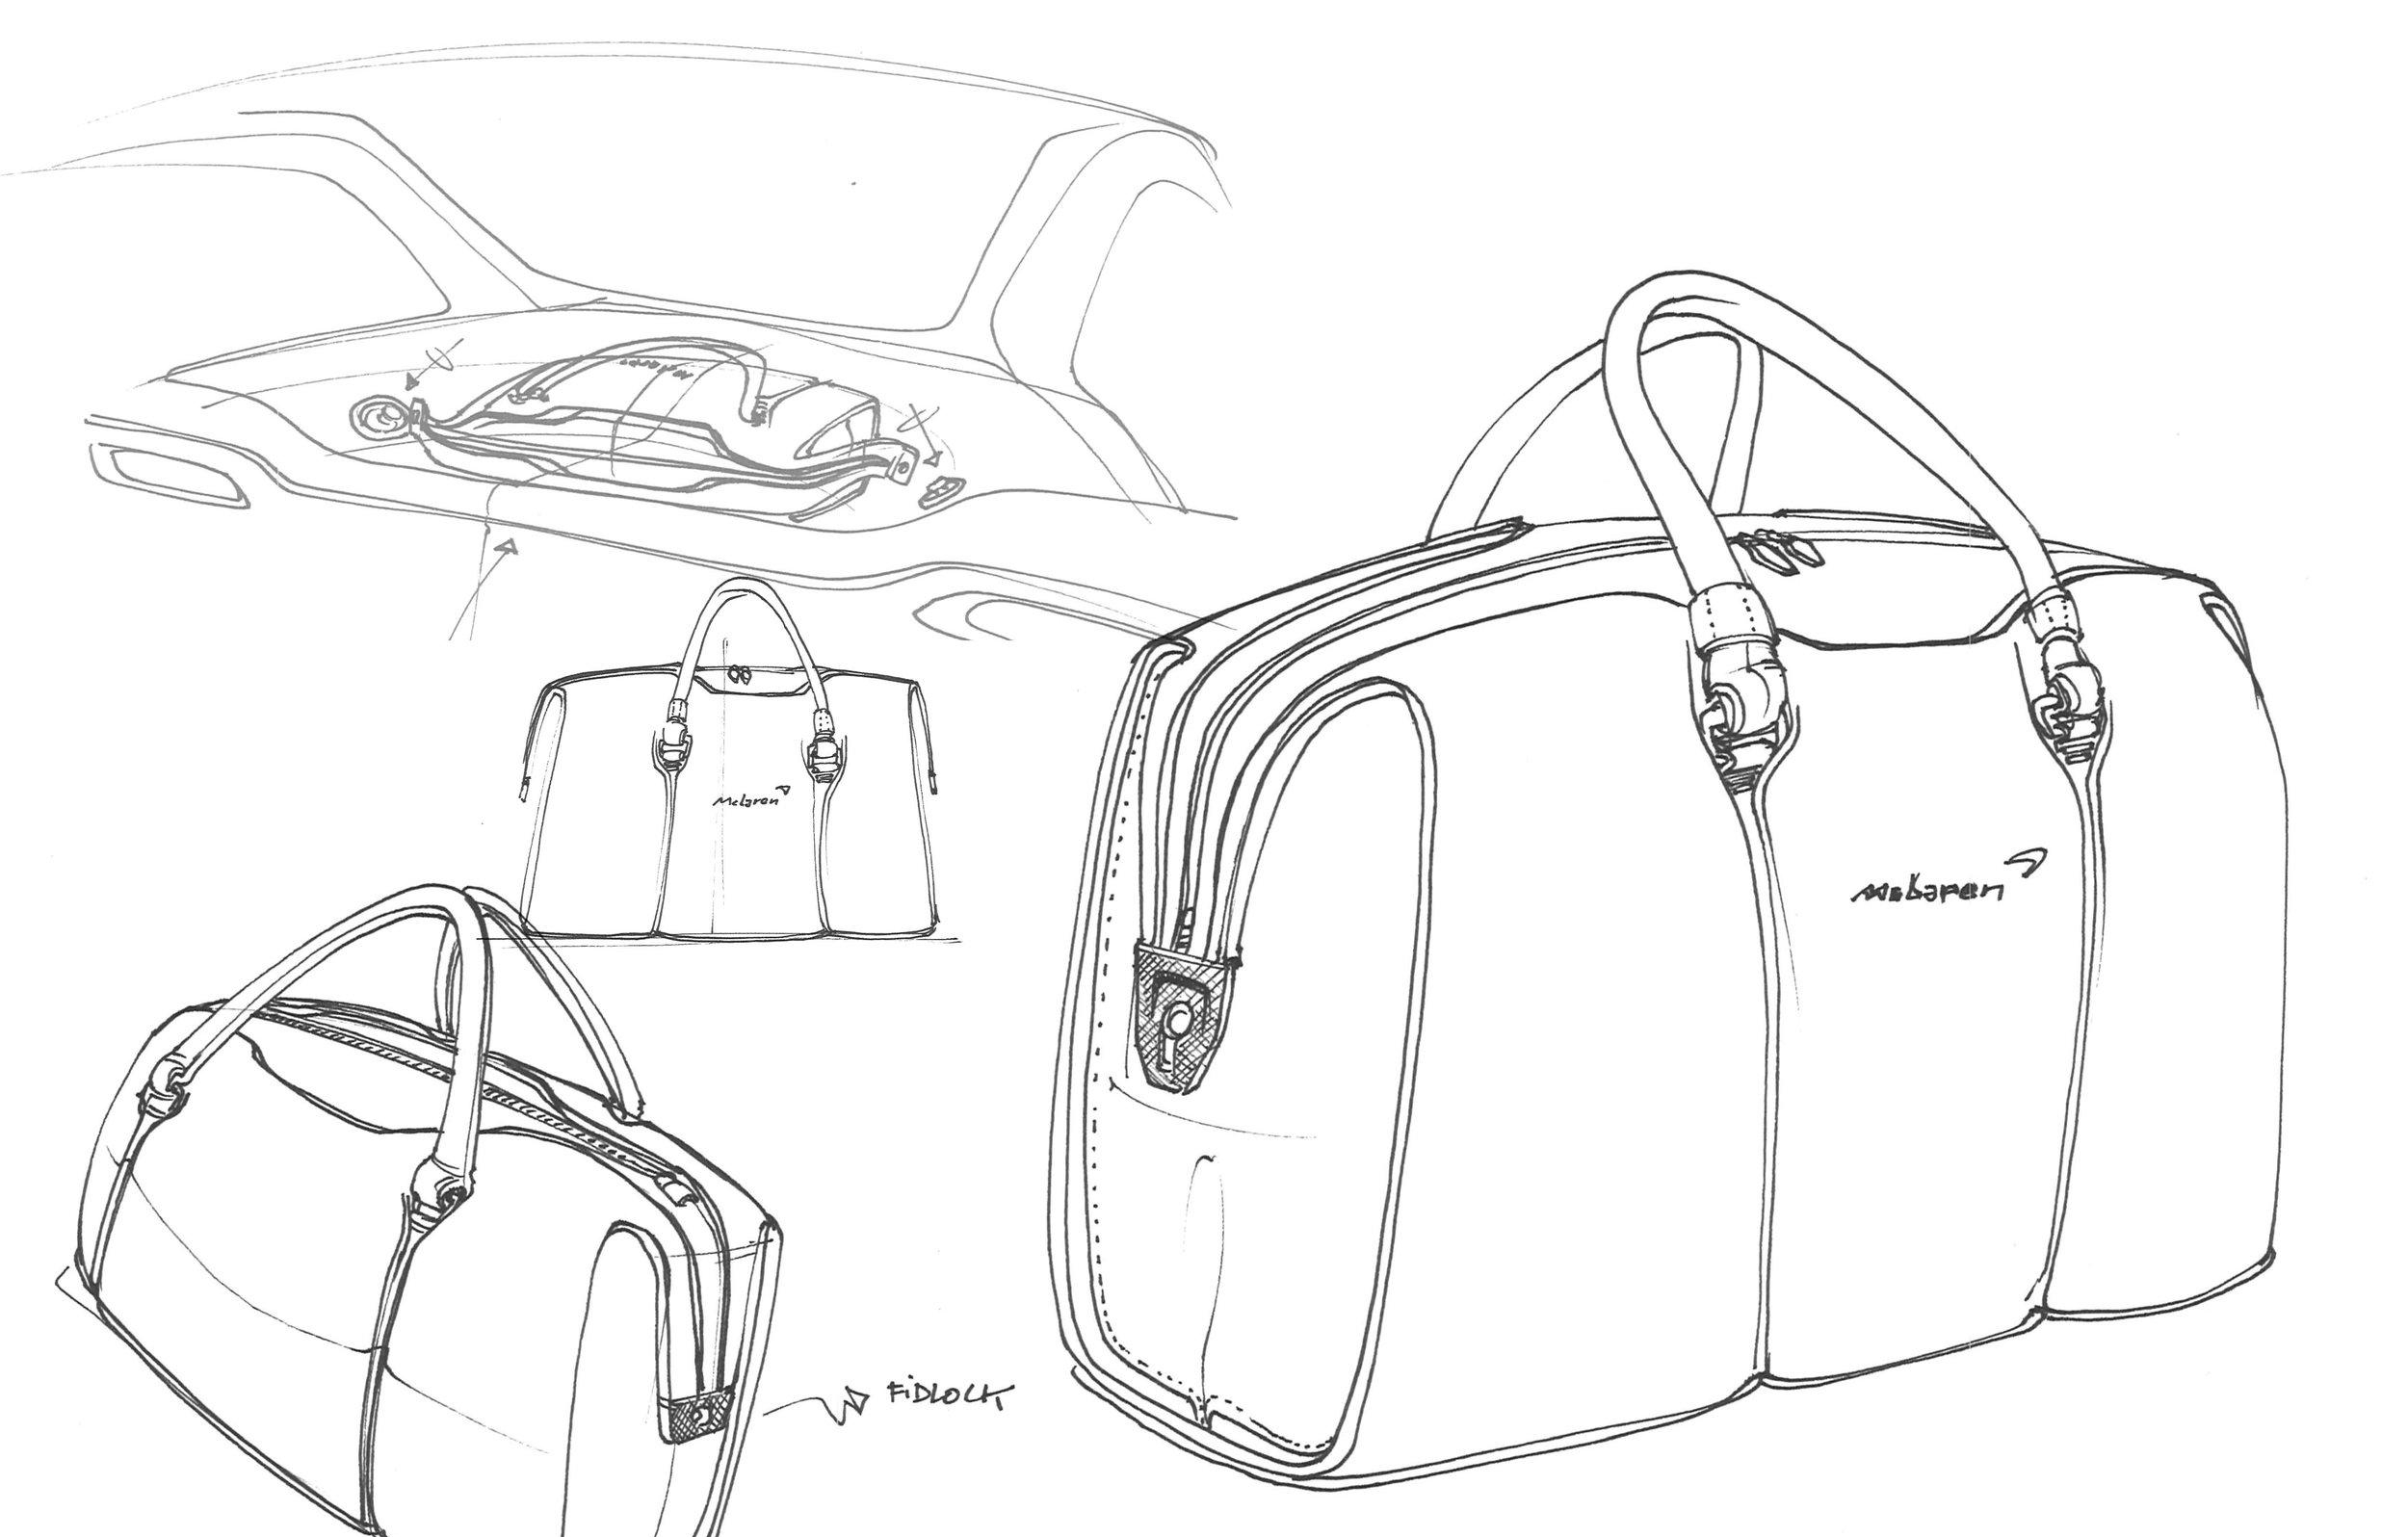 CONCEPT 4 C - McLaren Holdall and Trolleys concepts _  010716 full_Page_05.jpg